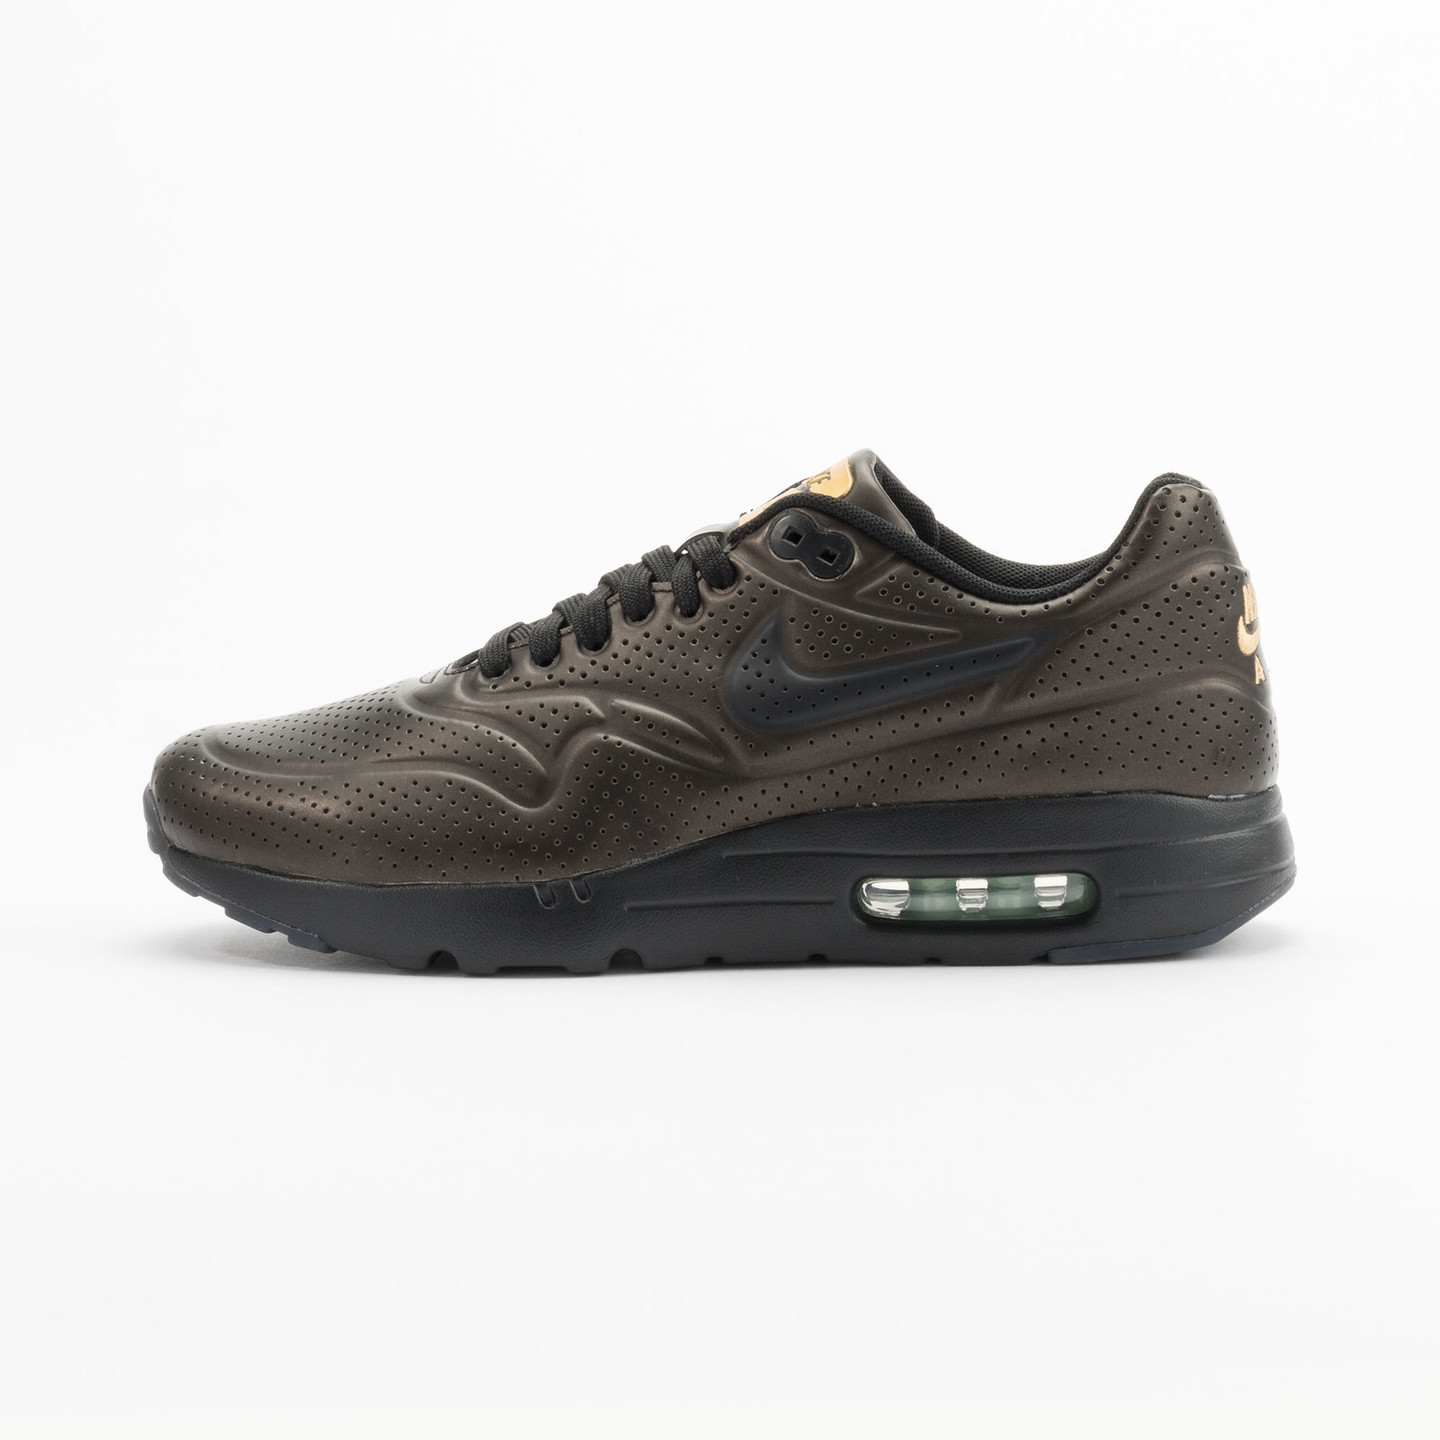 Nike Air Max 1 Ultra Moire Metallic Gold / Black 705297-700-40.5